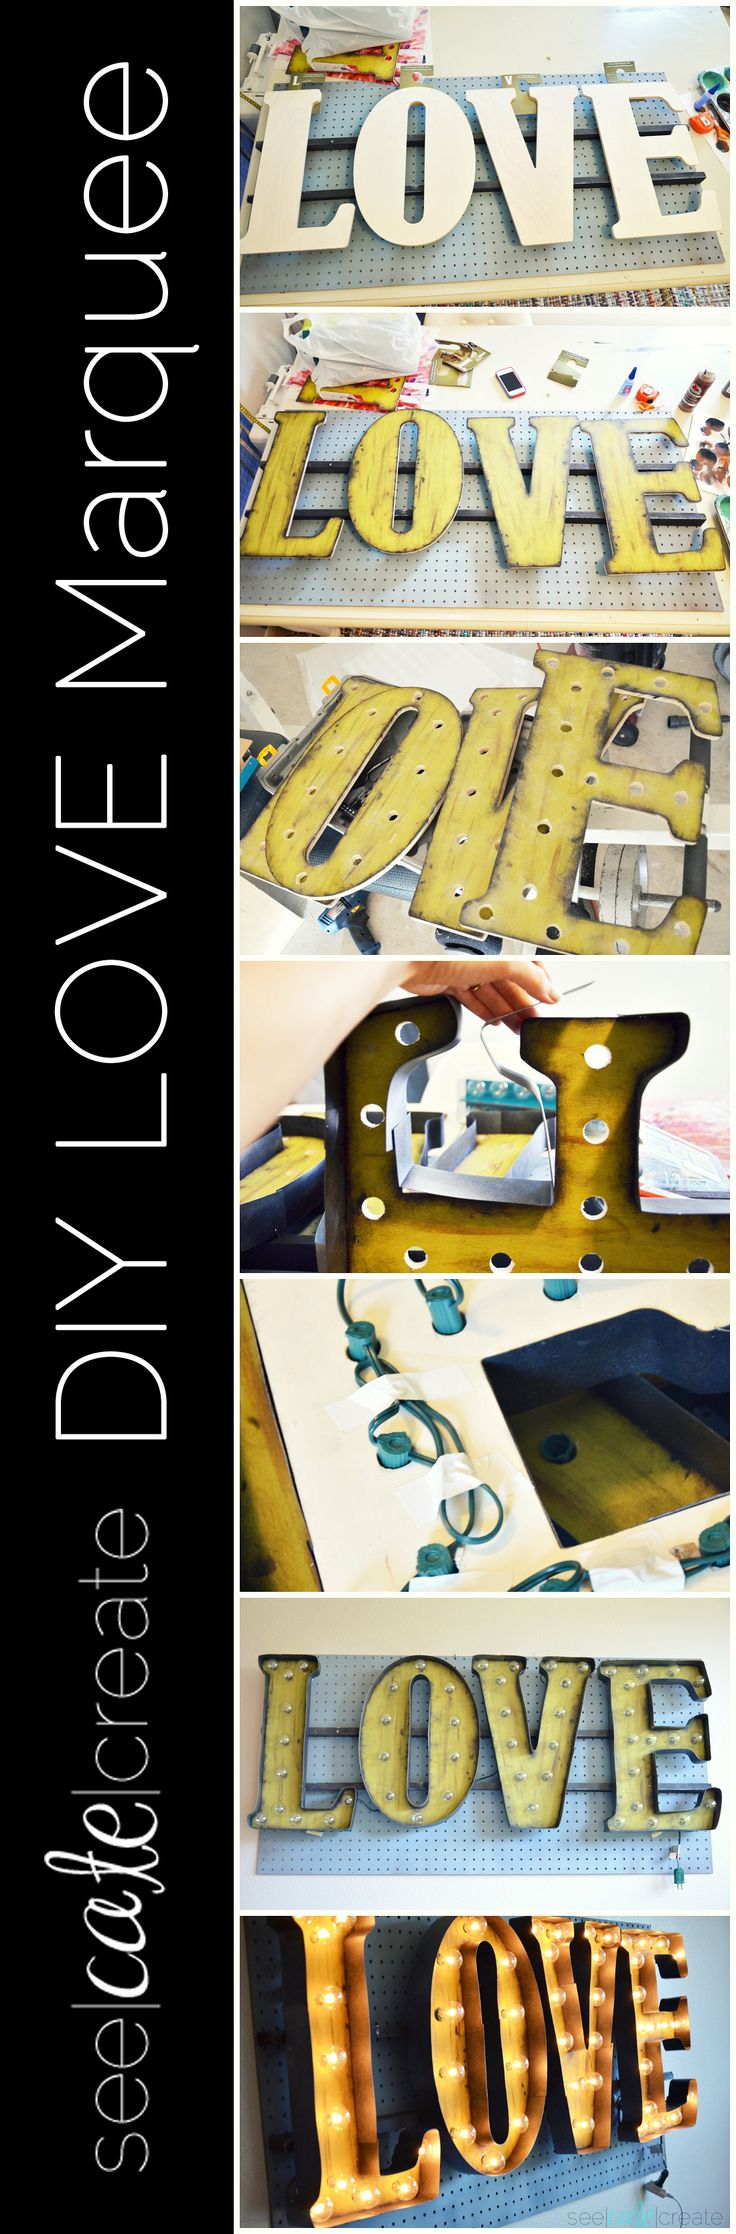 DIY Vintage Light-Up Marquee|Love Sign; could do any word, this is kind of cool!